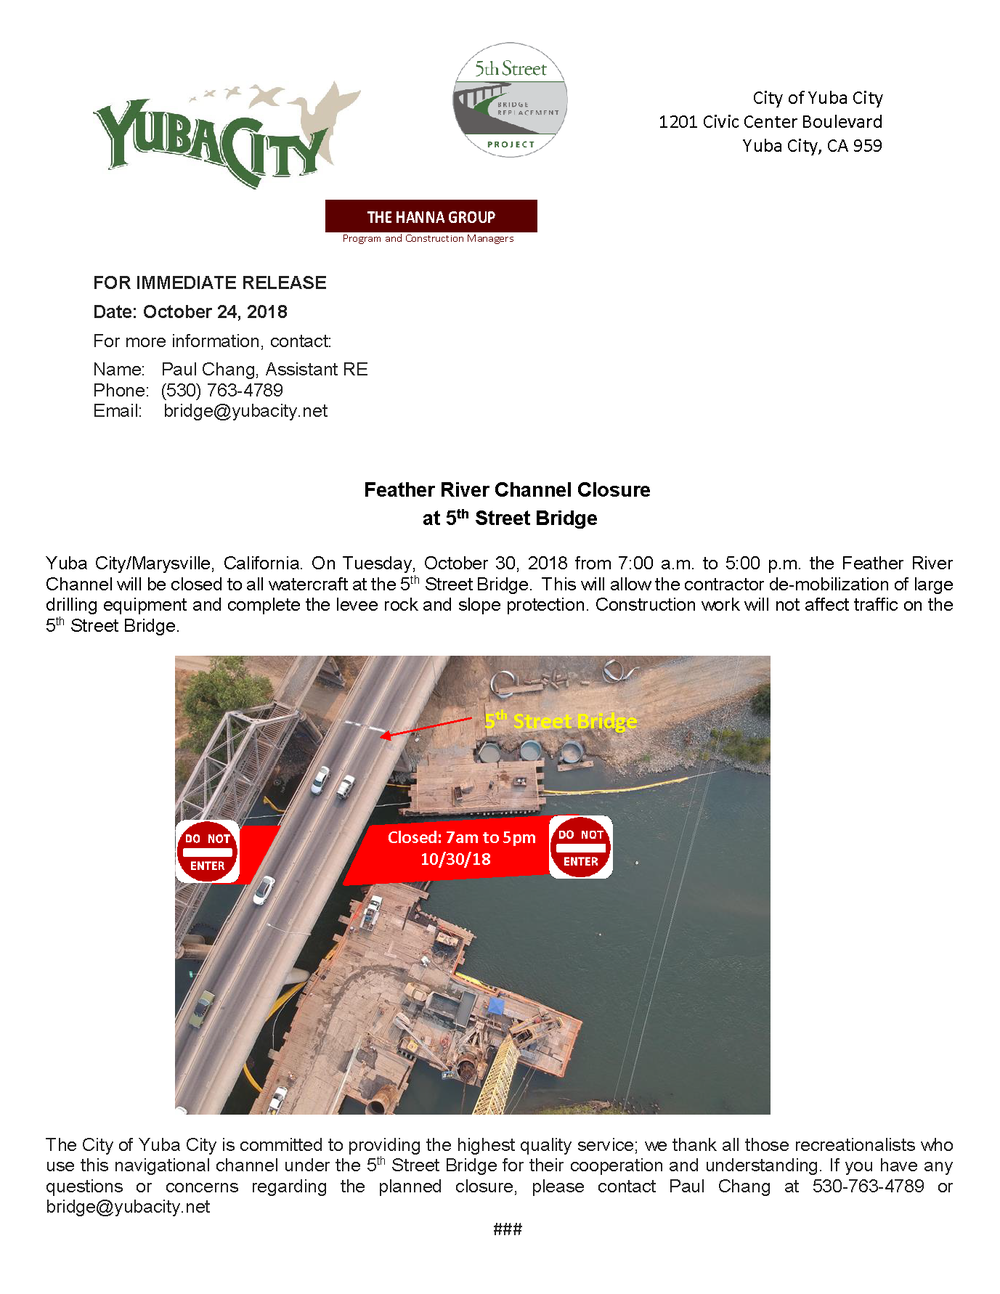 Press Release - Feather River Channel Closure to watercraft at 5th Street Bridge.png